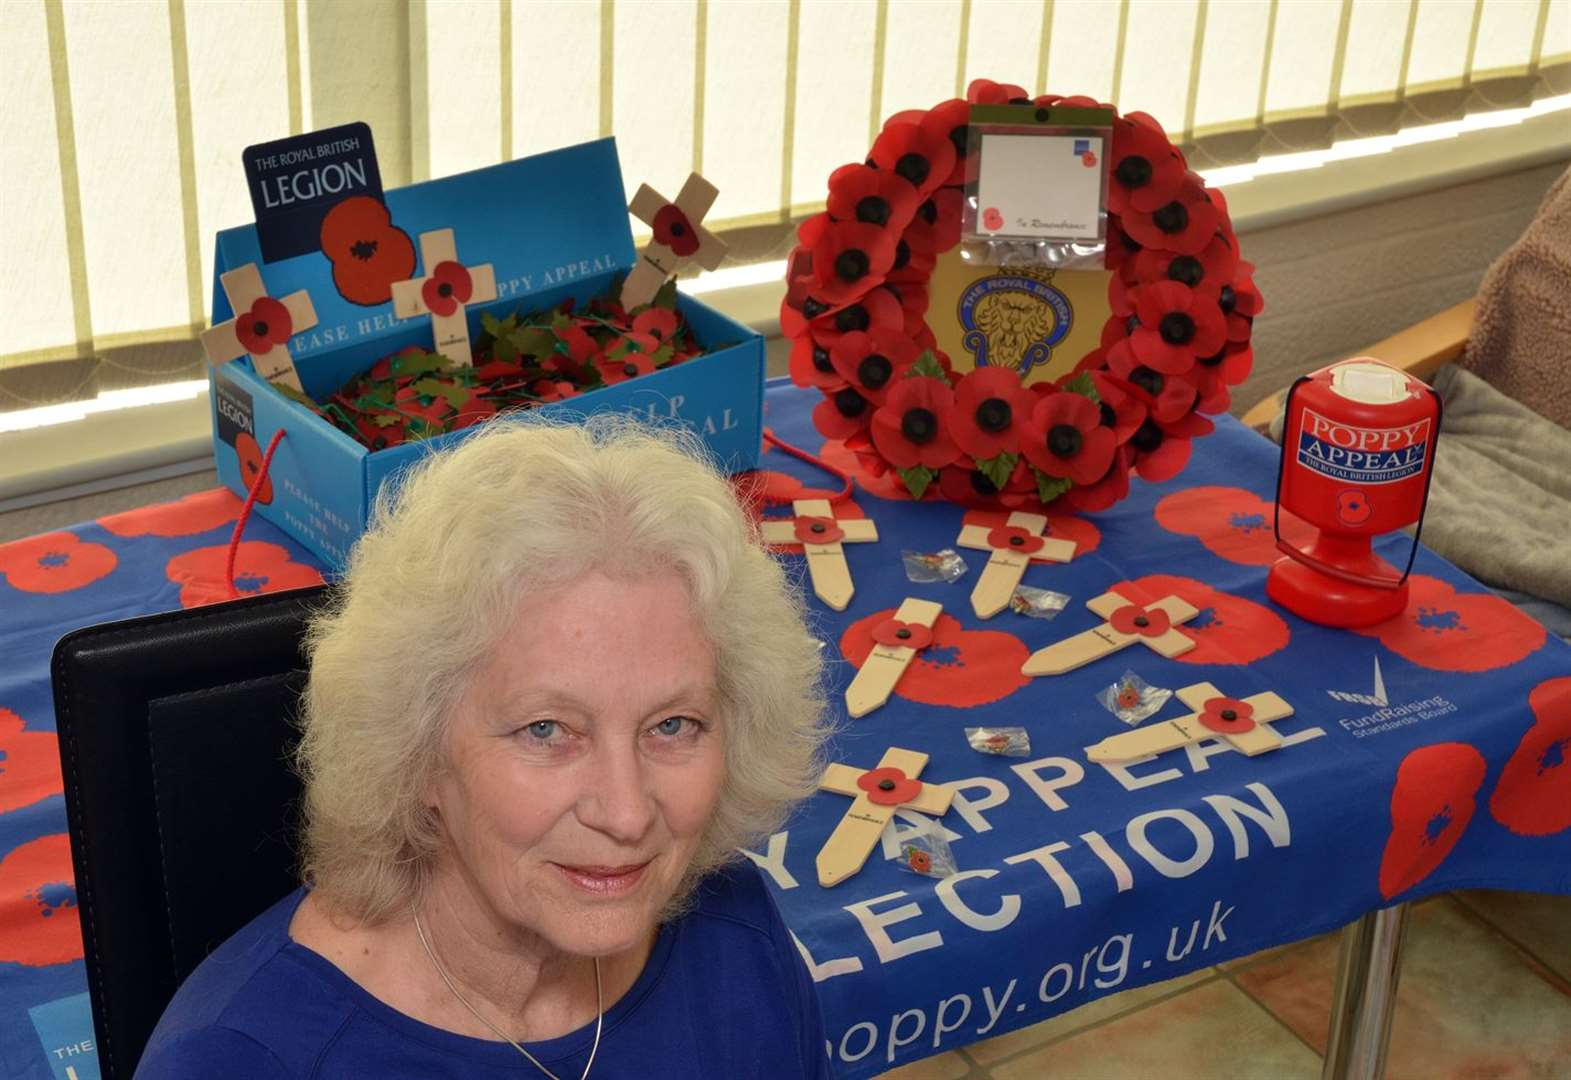 Don't let Long Sutton Poppy Appeal fade and die